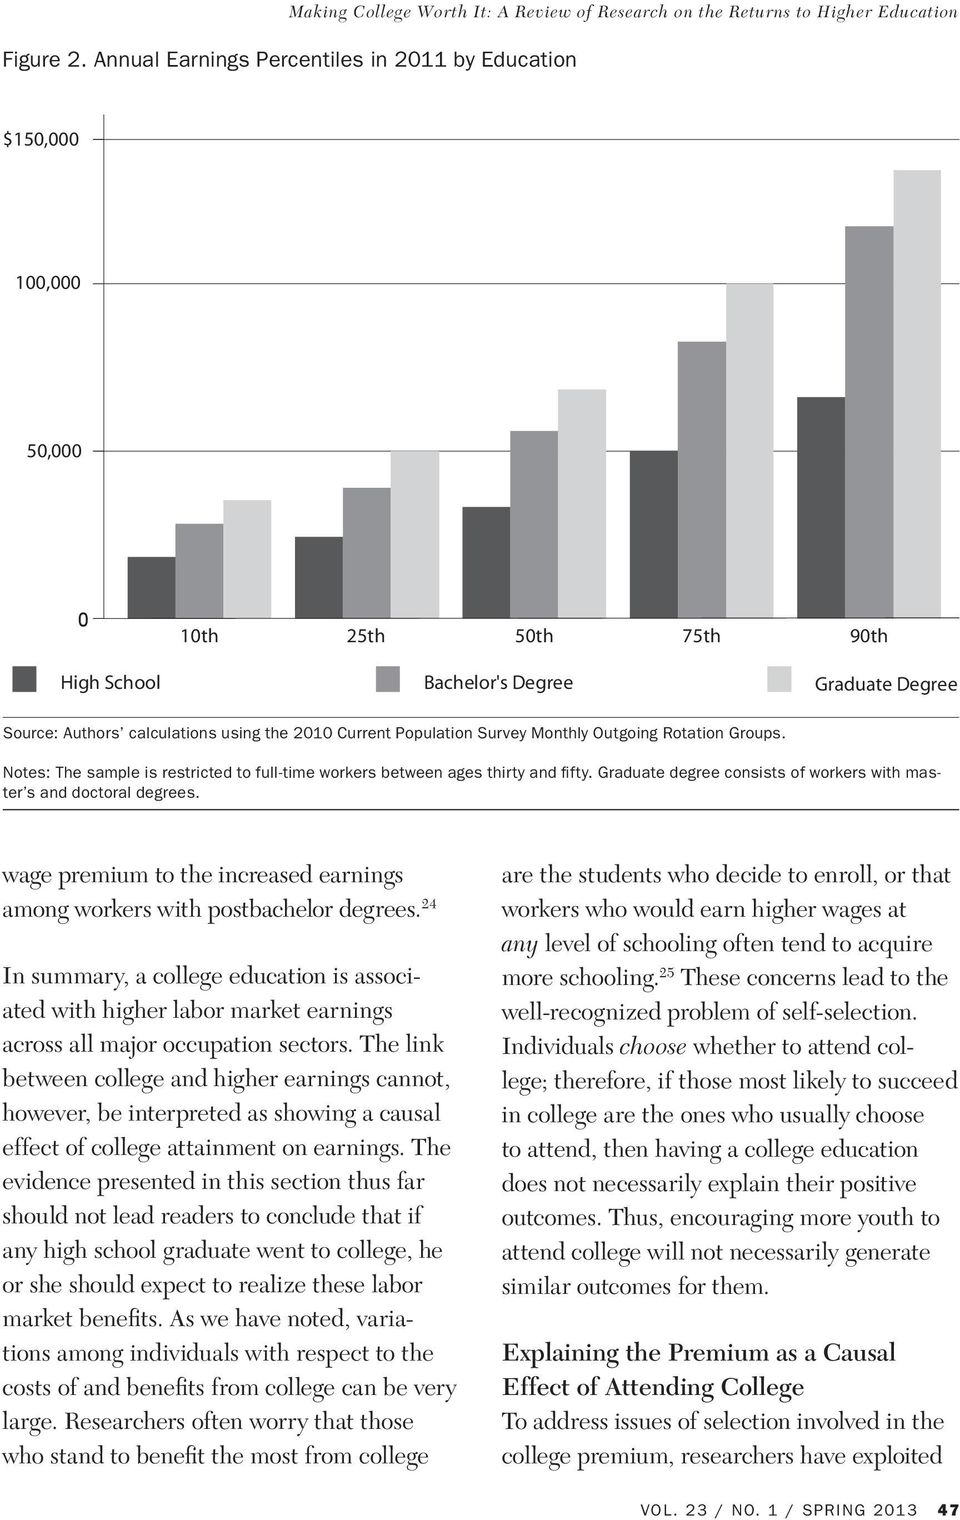 calculations using the 2010 Current Population Survey Monthly Outgoing Rotation Groups. Source: Authors' calculations using the 2010 Current Population Survey Monthly Outgoing Rotation Groups.